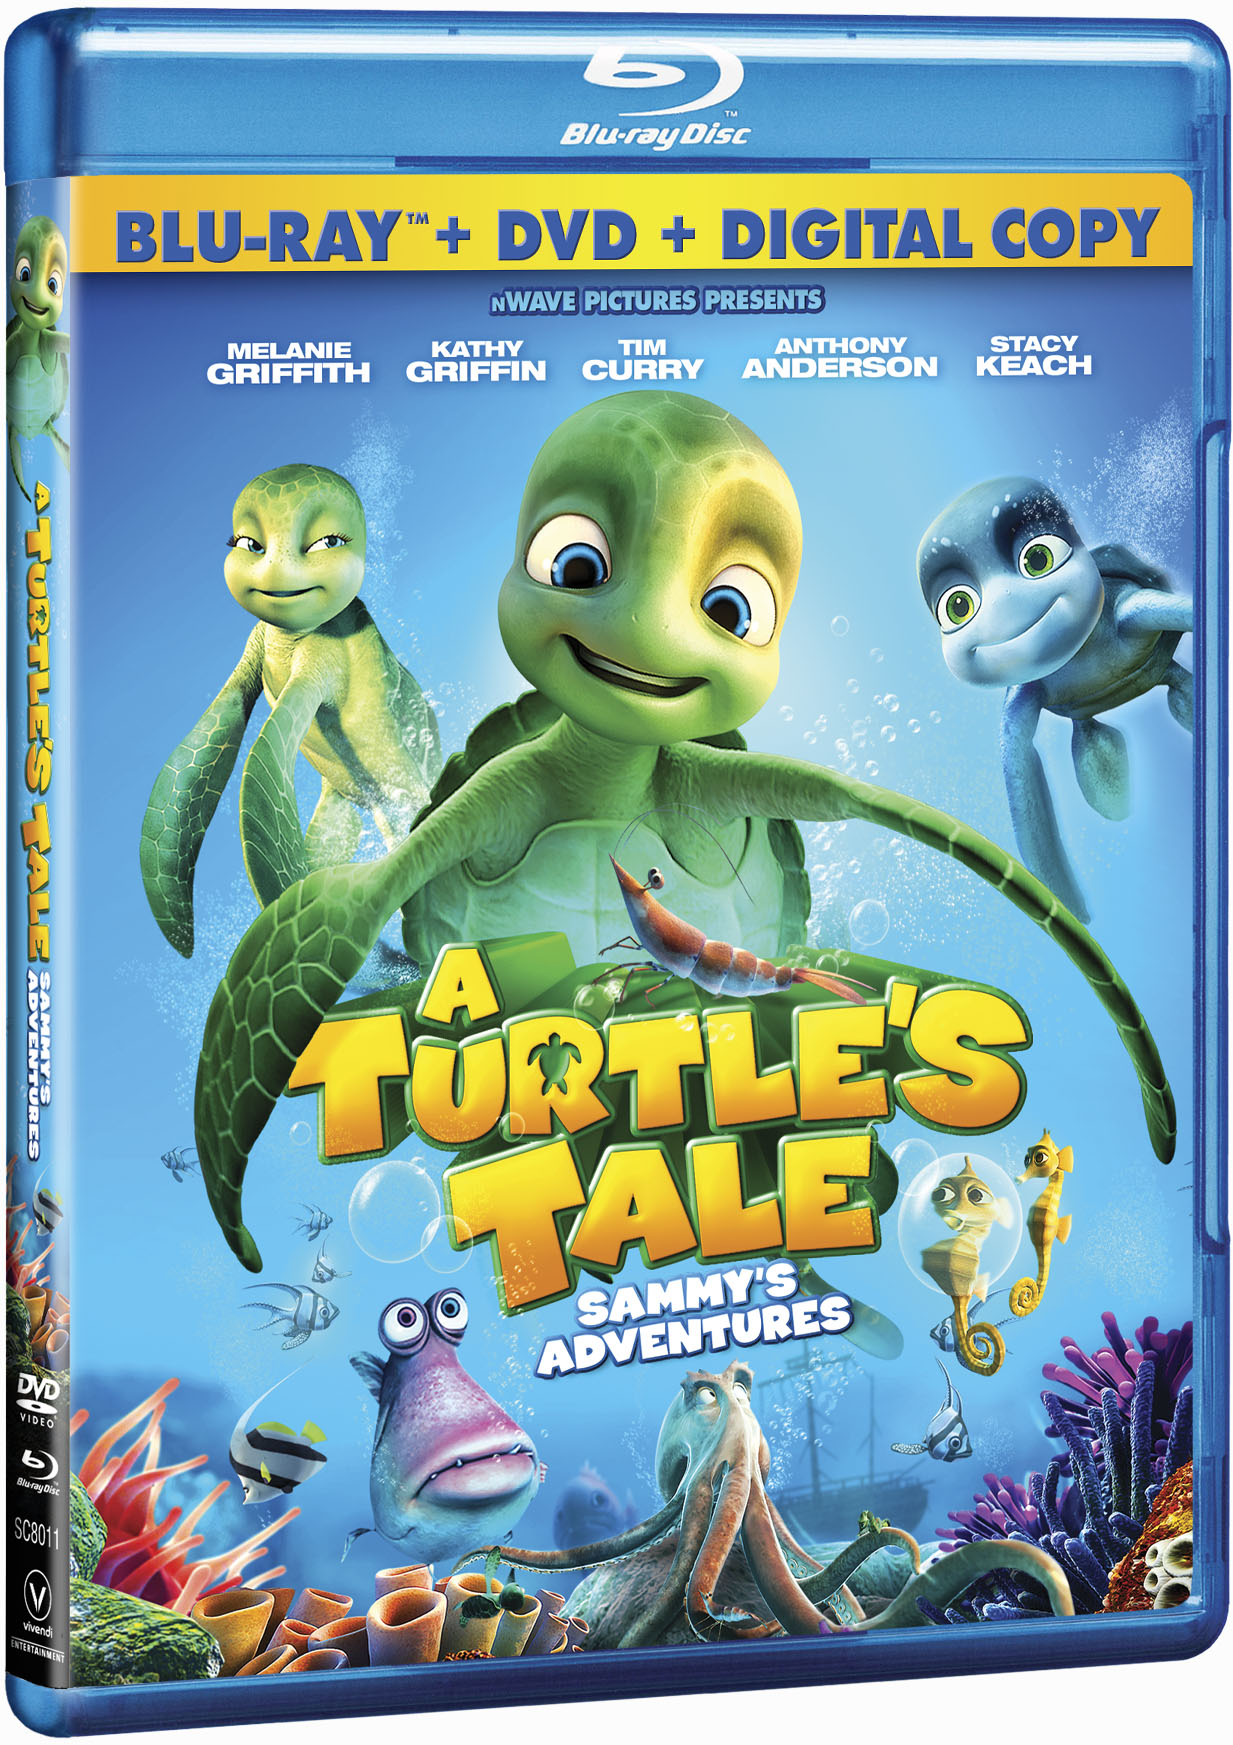 A Turtle S Tale Sammy S Adventures Review